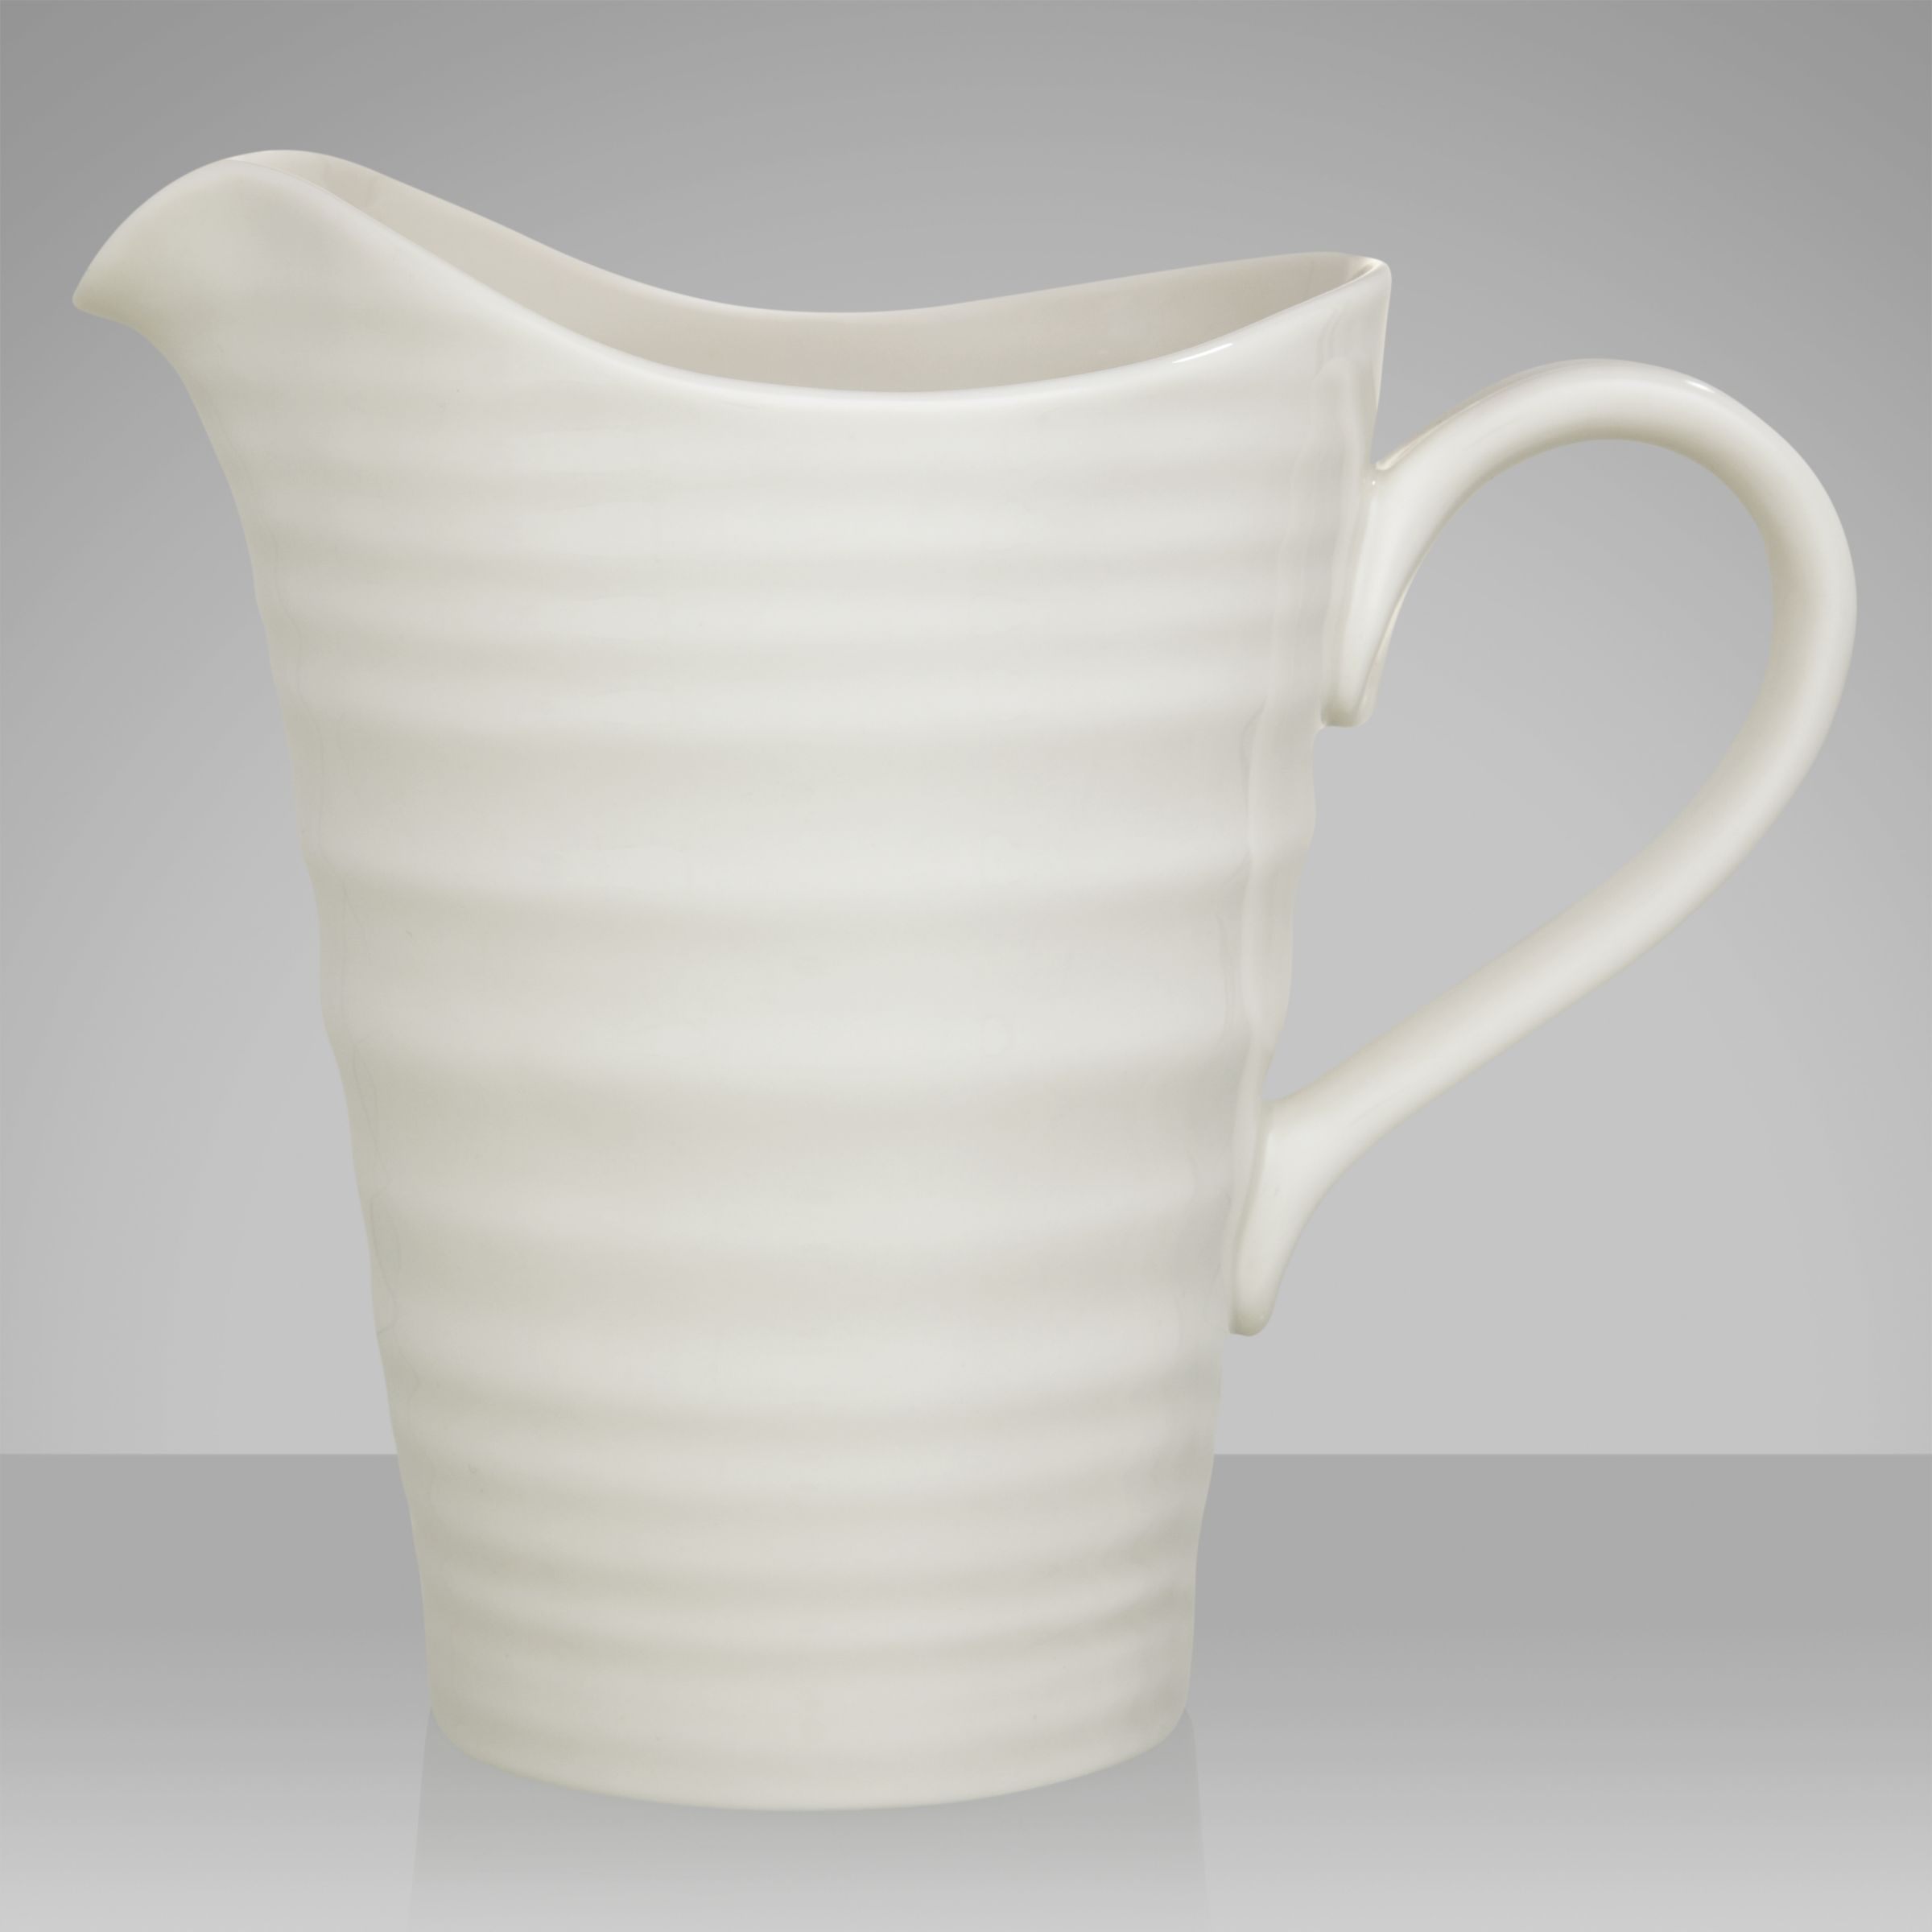 Sophie Conran for Portmeirion Pitchers, White